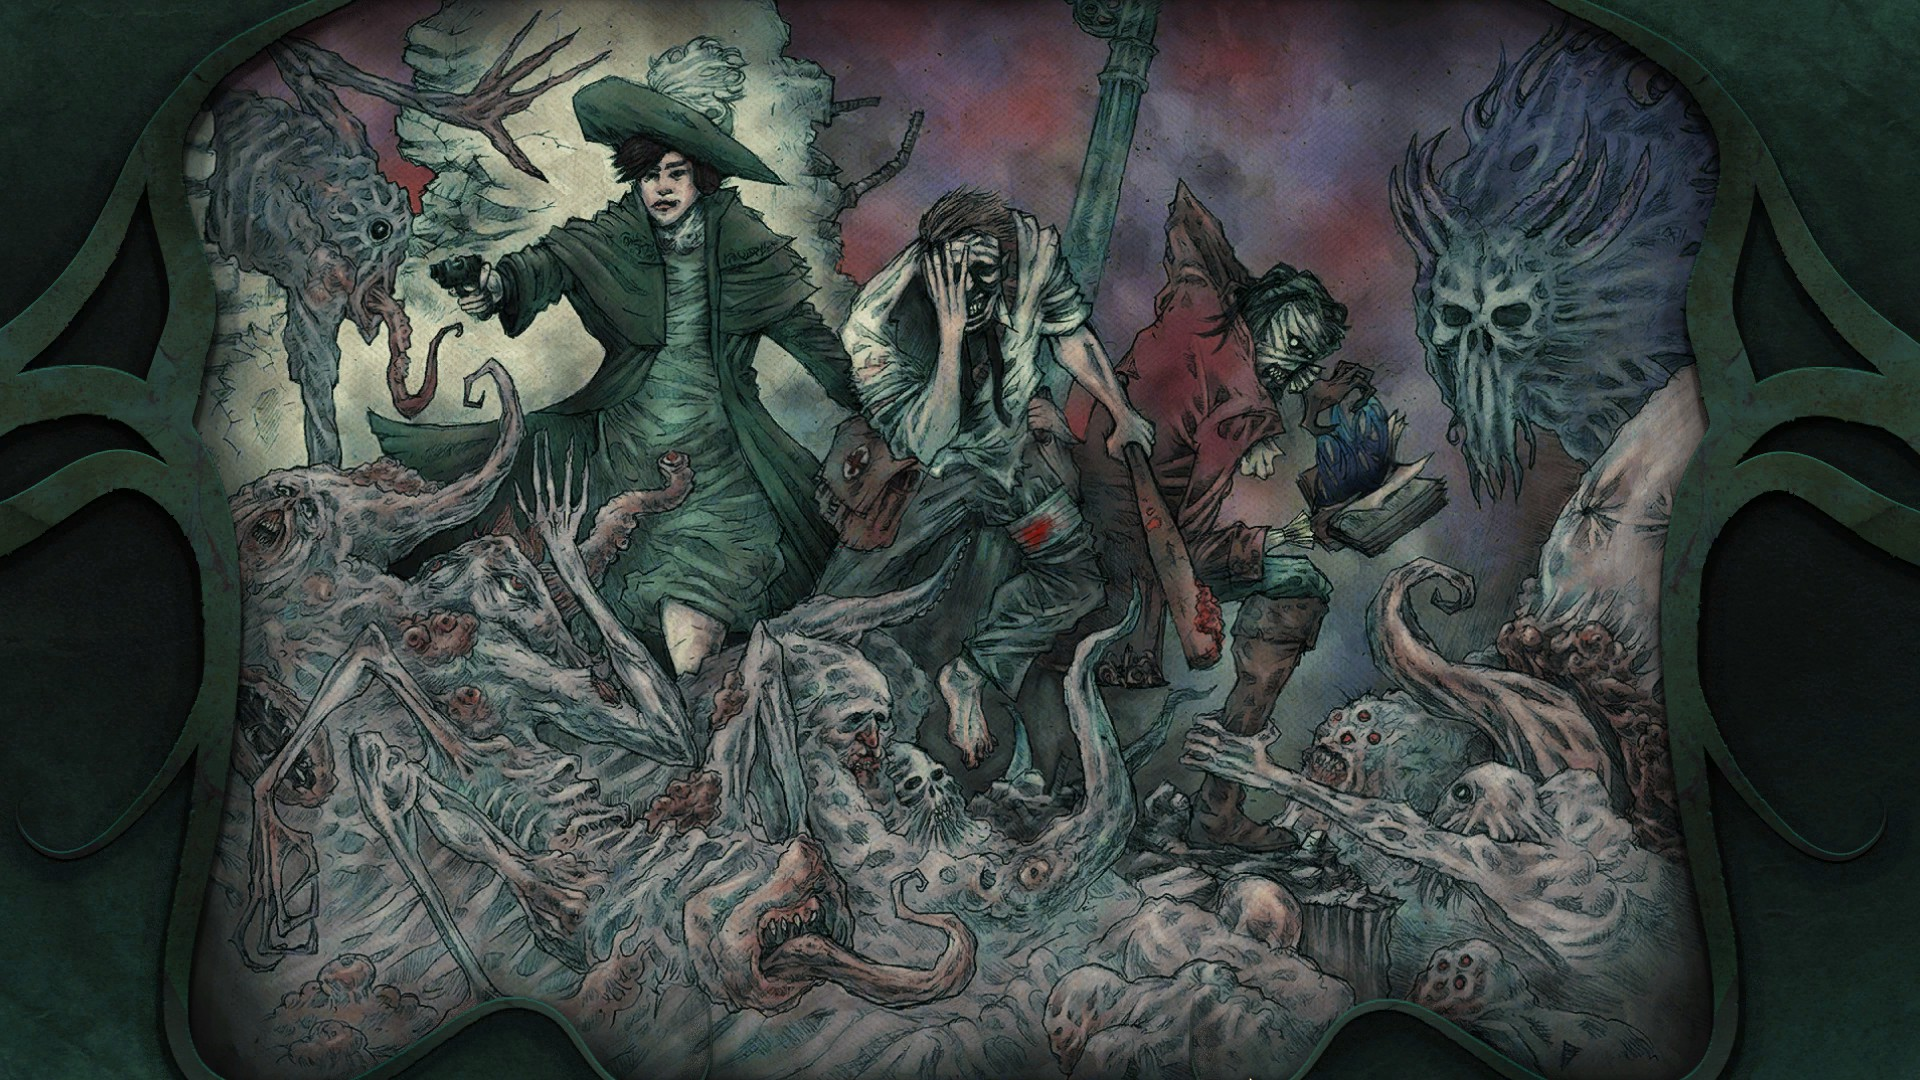 Cthulhu goes post-apocalyptic in Stygian: Reign of the Old Ones